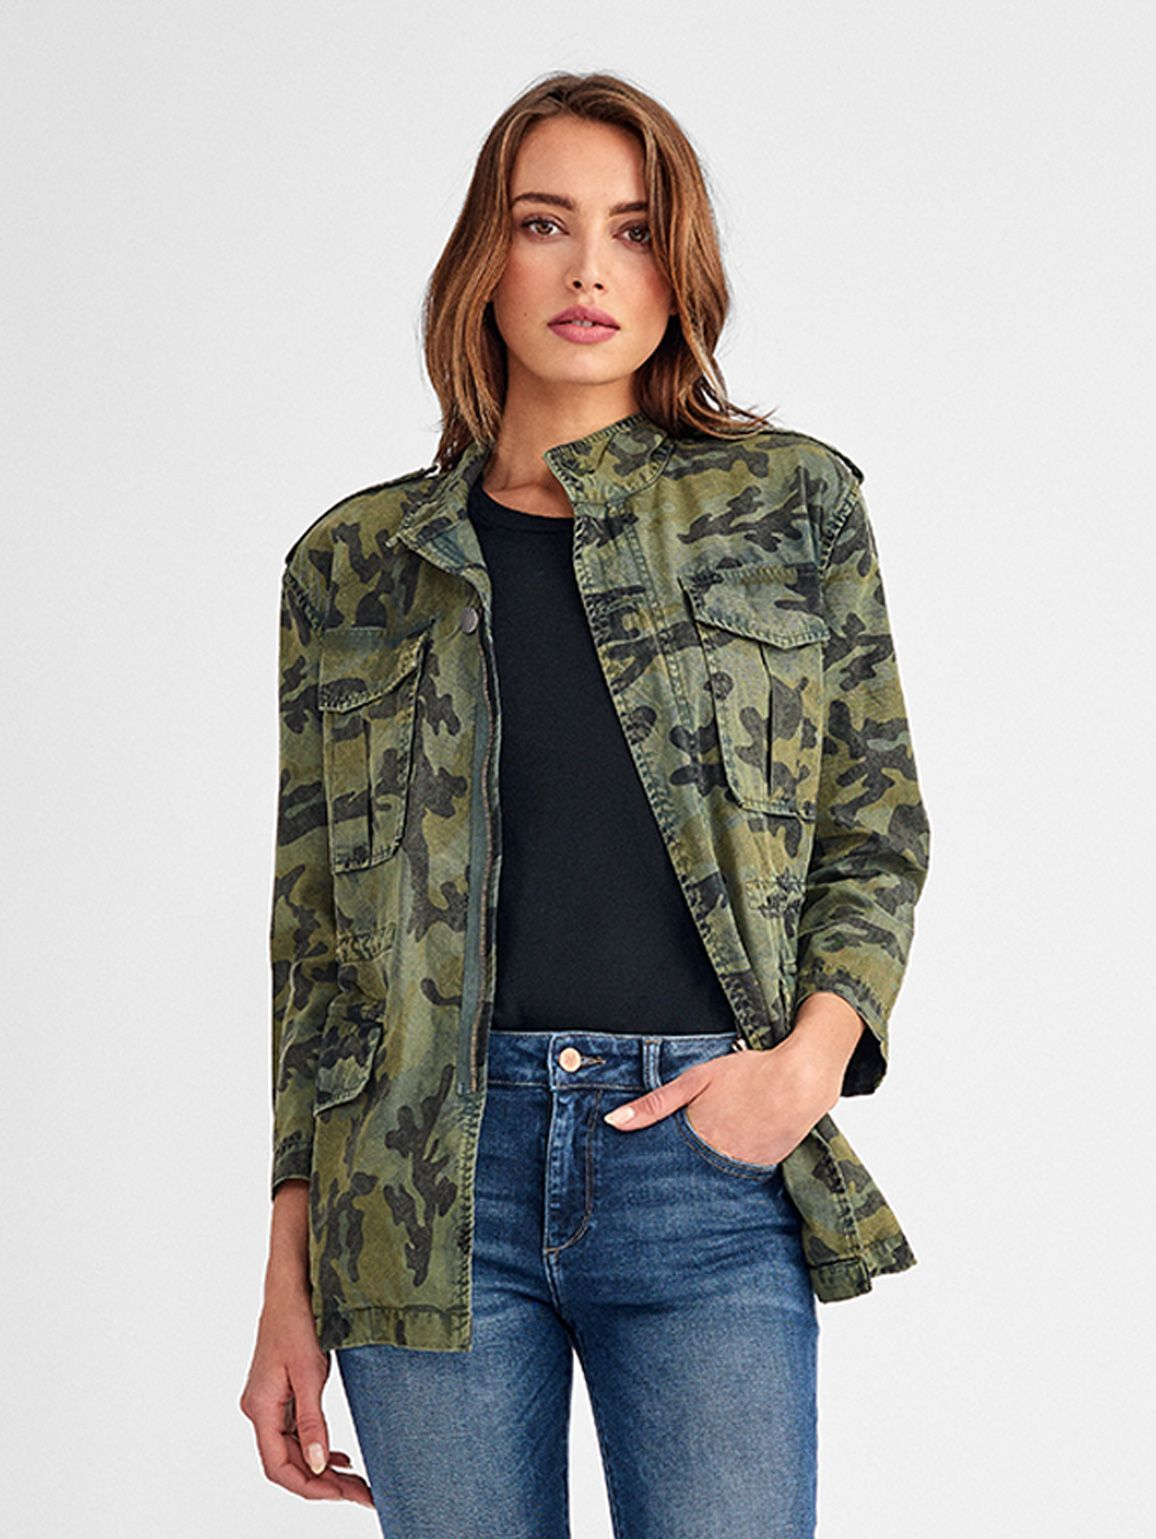 Beekman Military Jacket | Camouflage - DL1961